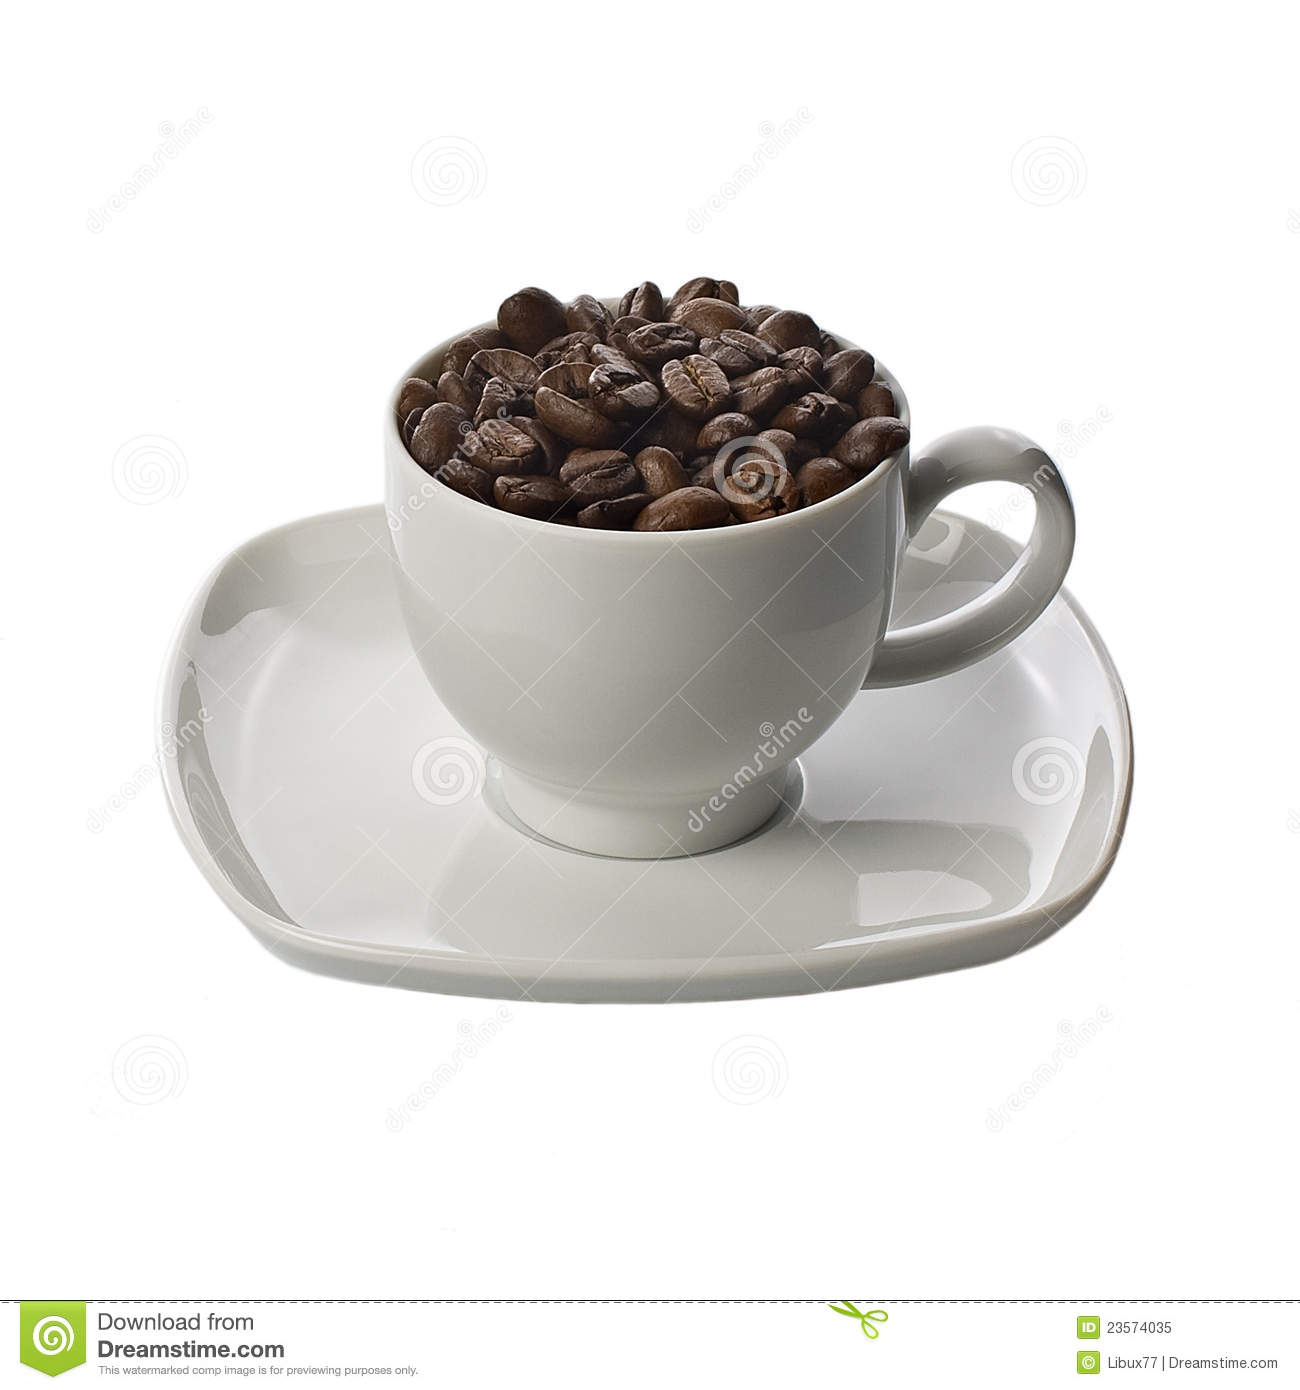 Coffee Beans and Cup with Saucer